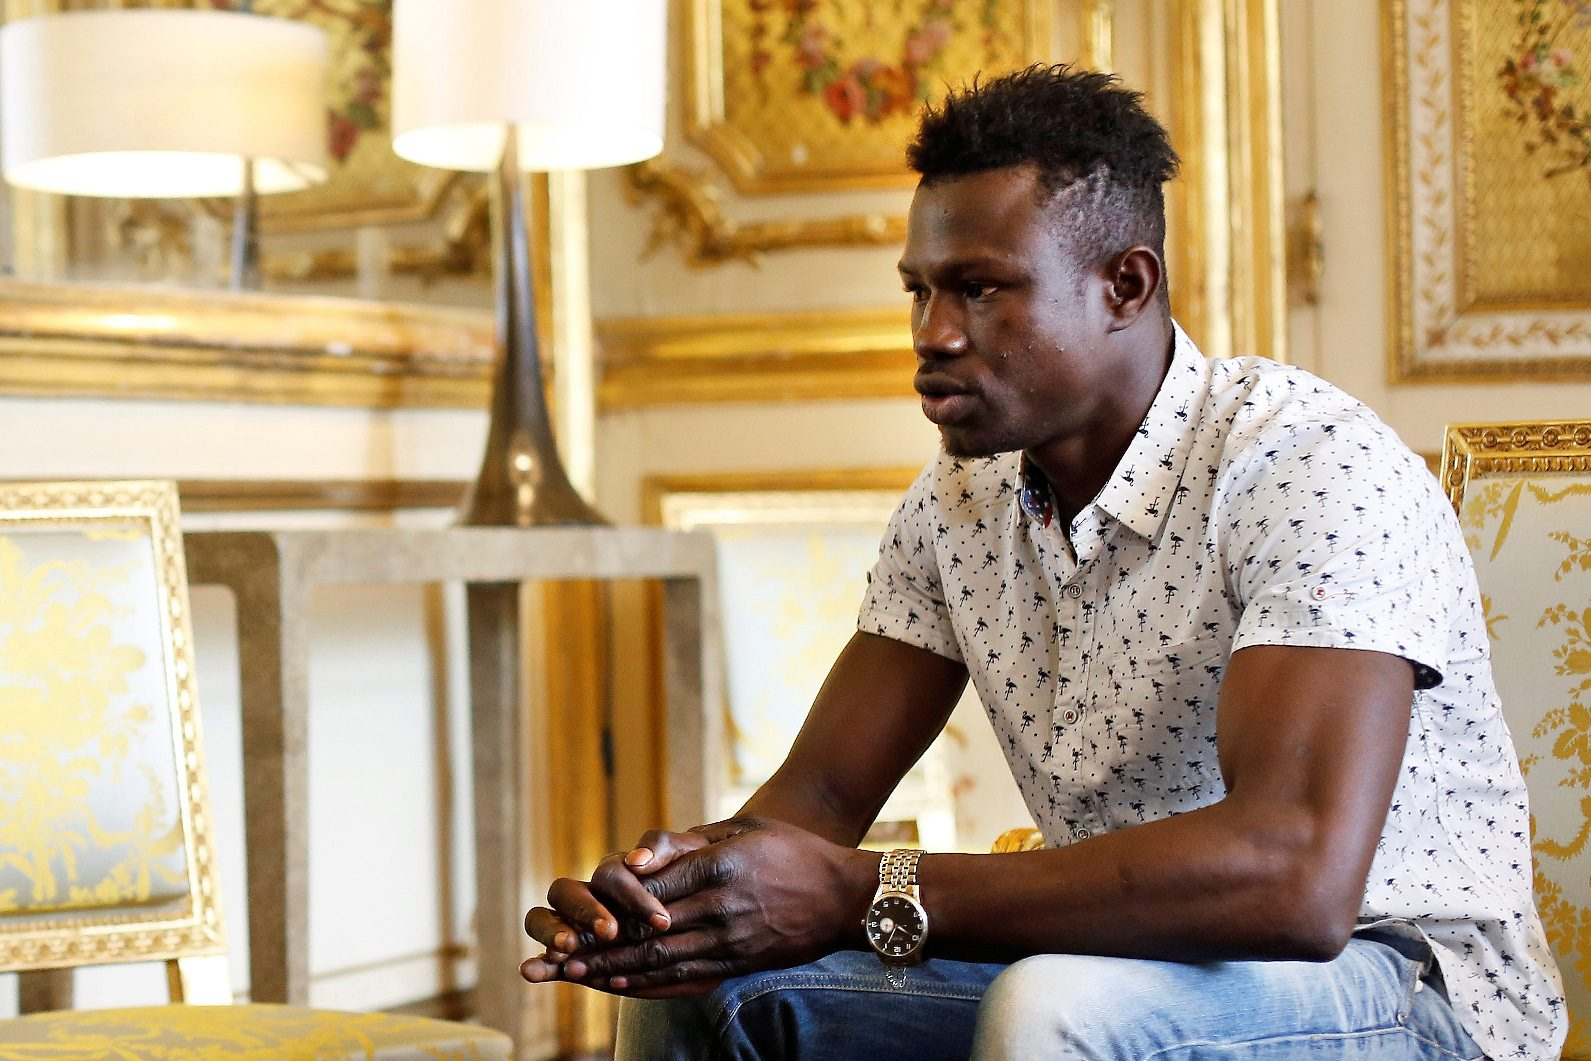 Mamoudou Gassama, 22, from Mali, is pictured during a meeting with French President Emmanuel Macron at the Elysee Palace in Paris, France, May 28, 2018. Mamoudou Gassama living illegally in France is being honored by Macron for scaling an apartment building over the weekend to save a 4-year-old child dangling from a fifth-floor balcony. Thibault Camus/Pool via Reuters